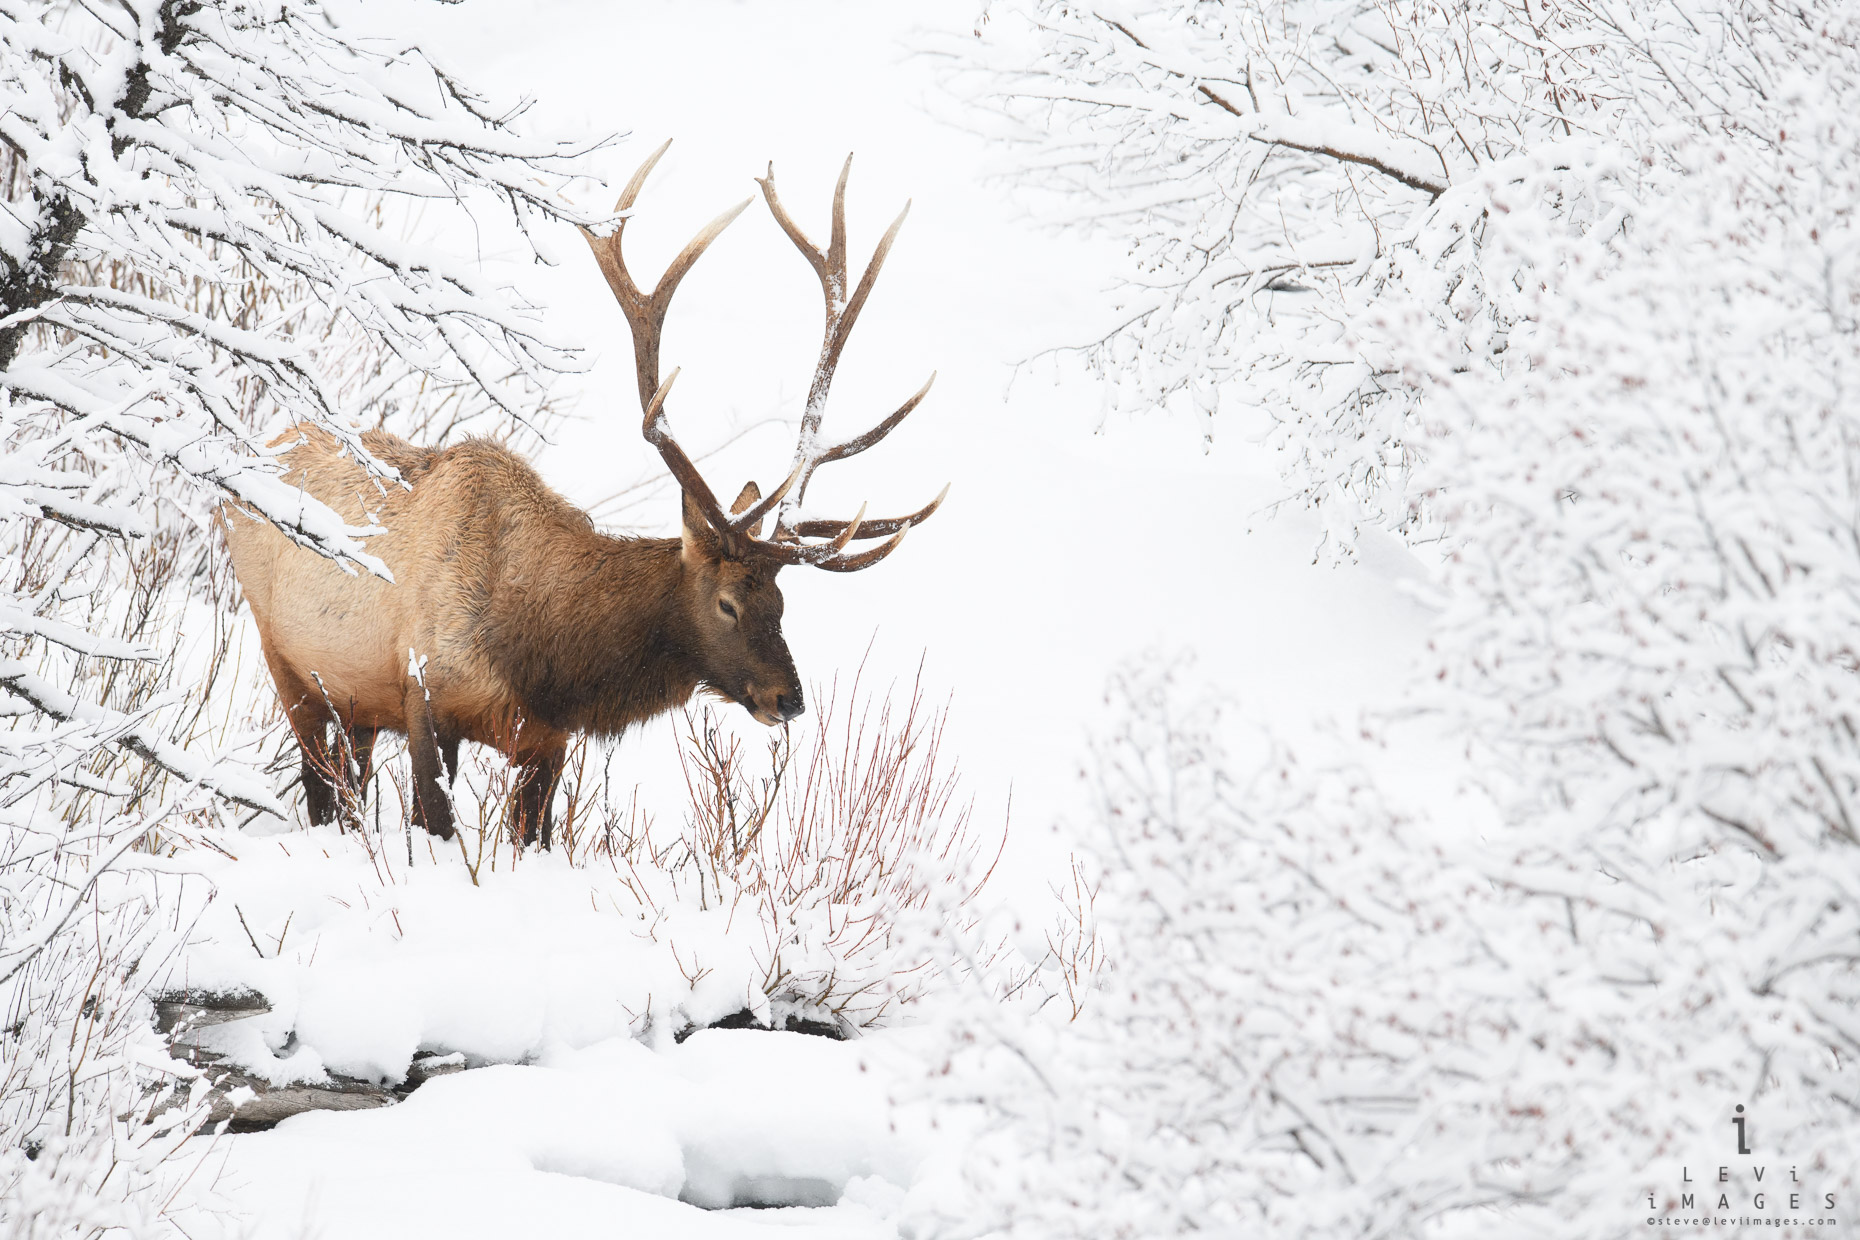 Elk (Cervus canadensis) in winter wonderland. Yellowstone National Park, Wyoming